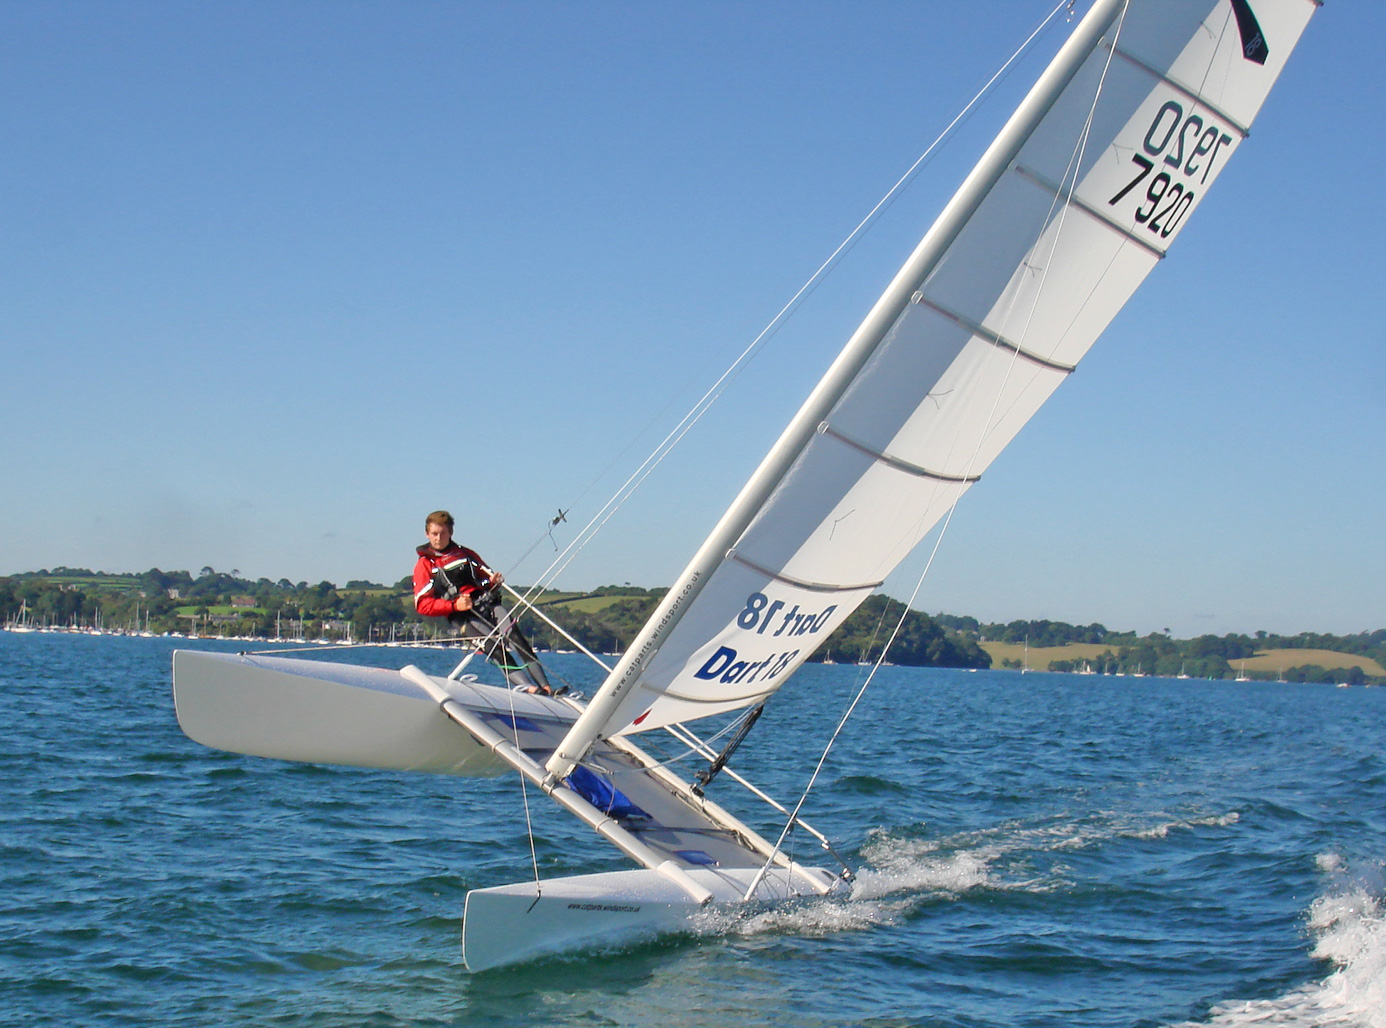 Dart 18 sailed single handed